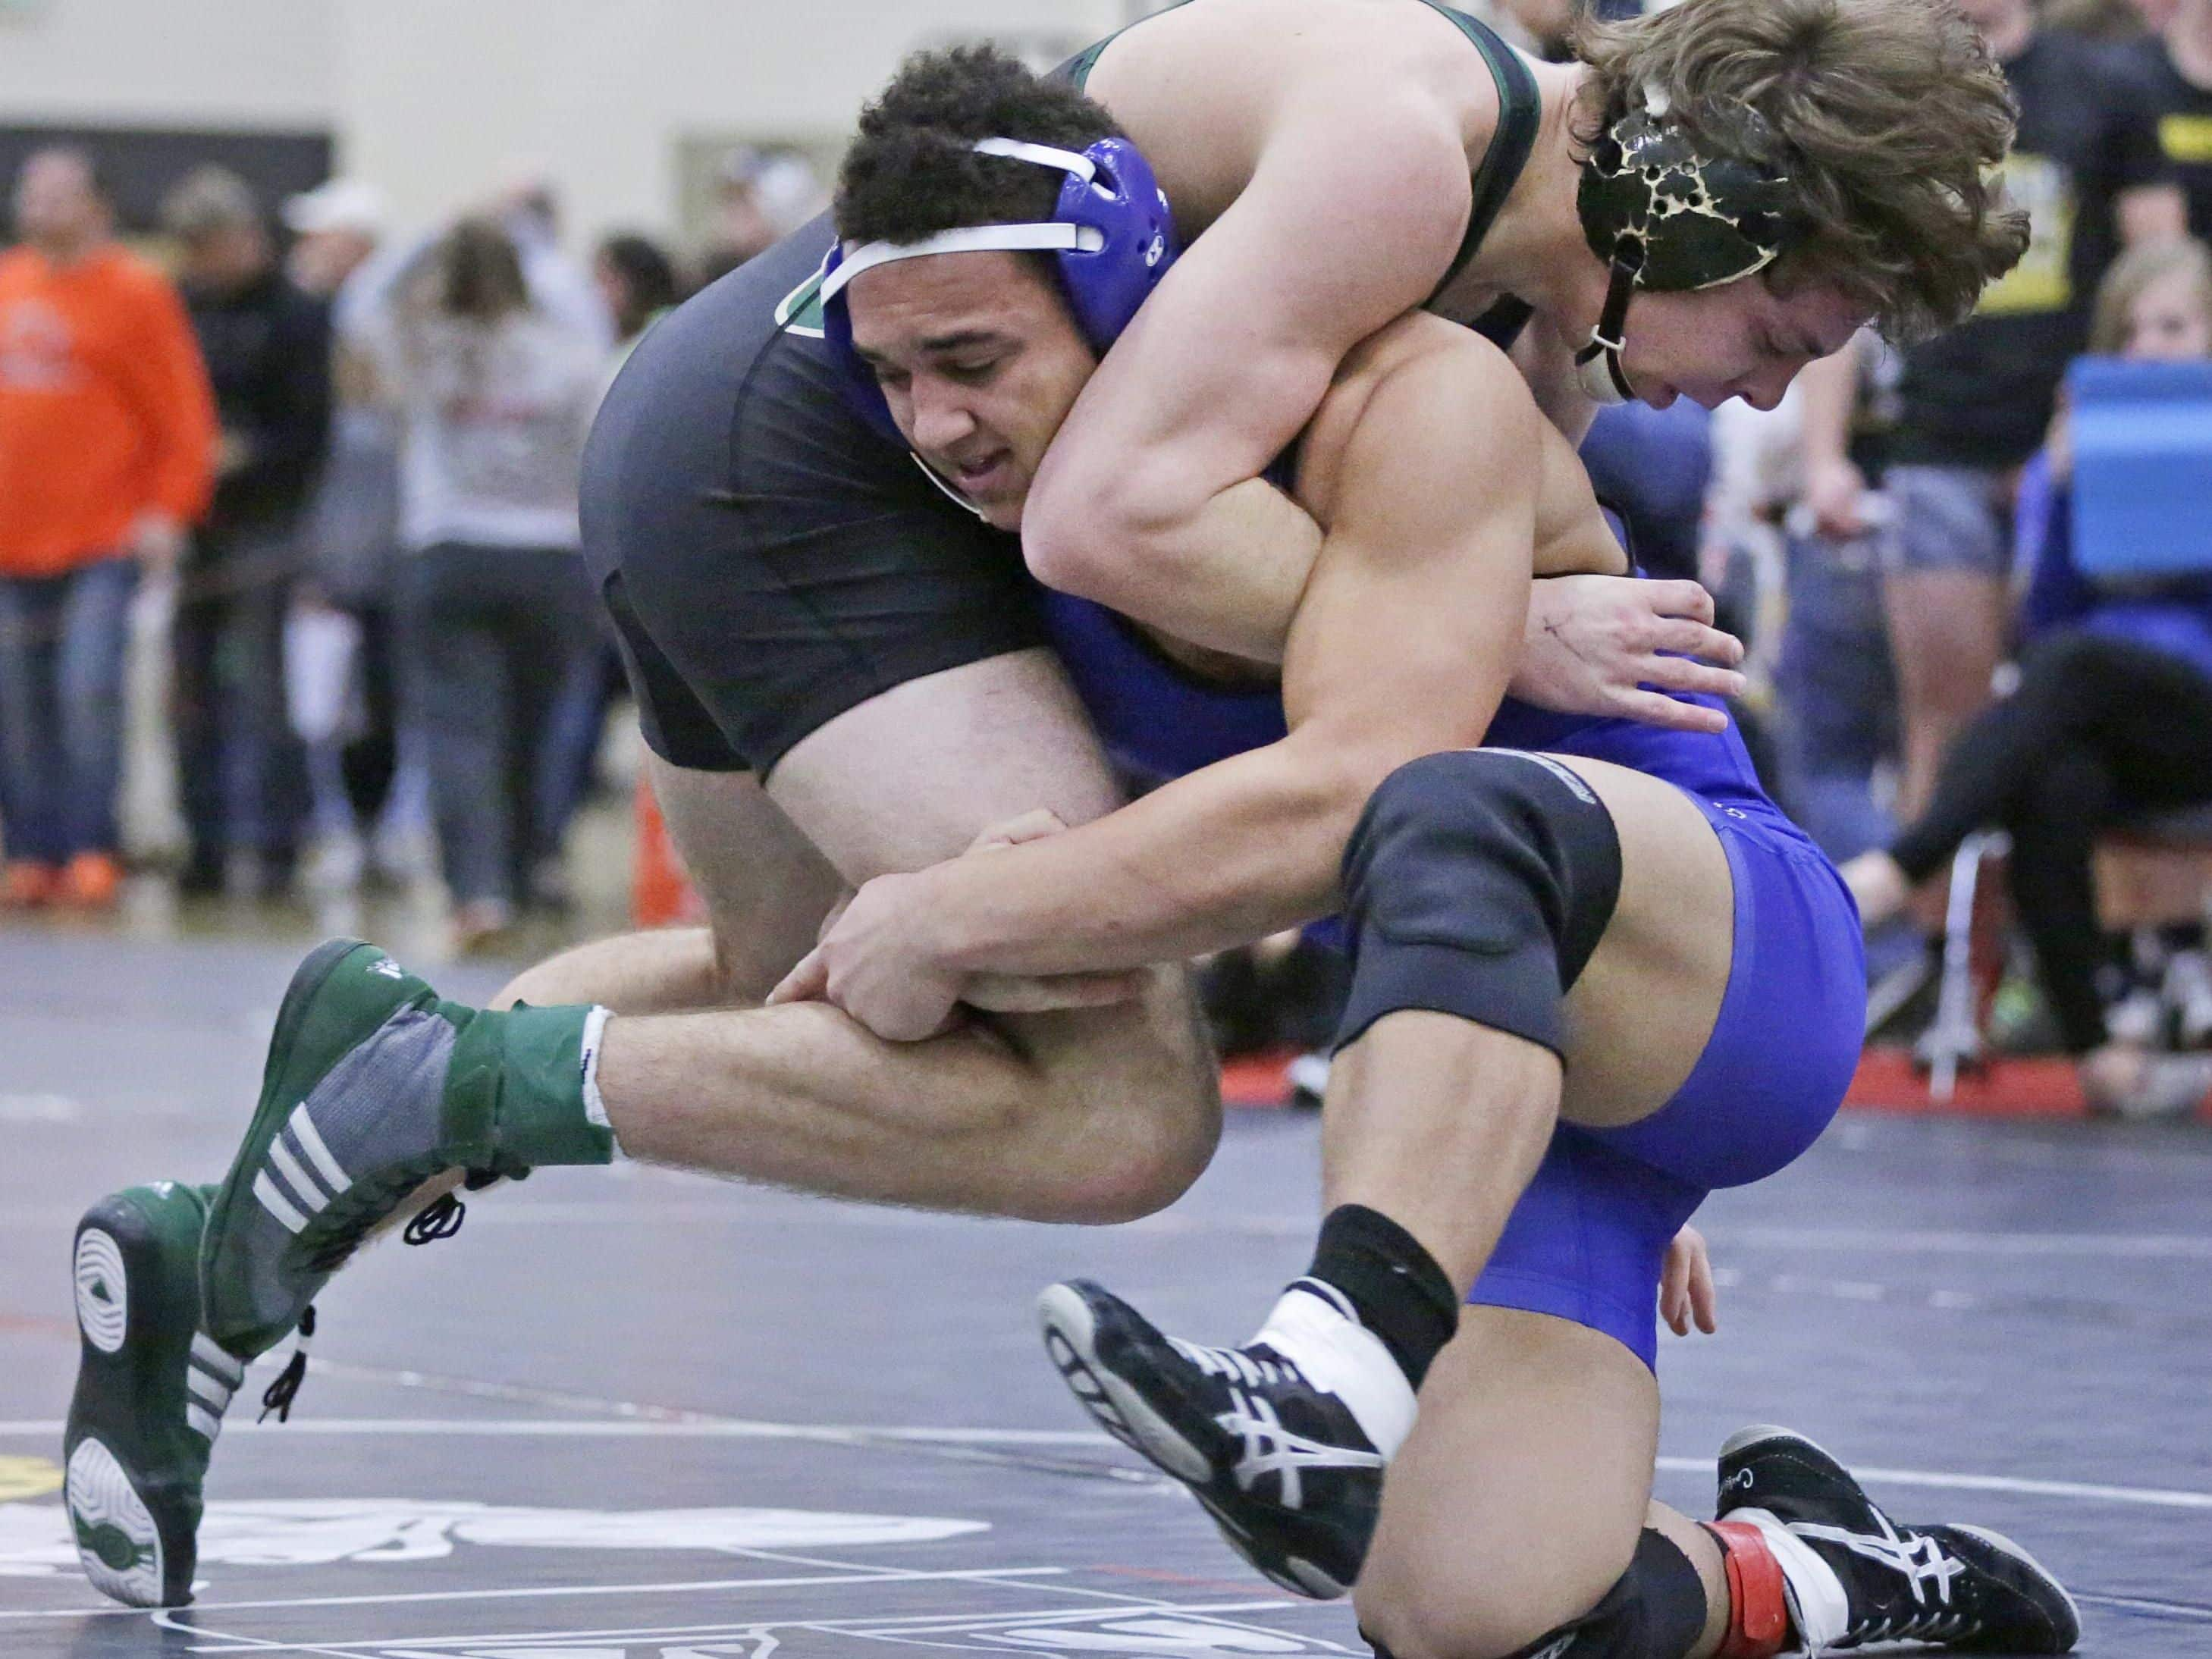 Wrightstown's Bryce Herlache, bottom, is one of four wrestlers at the WIAA Division 2 Denmark regional ranked No. 1 in their weight class by WIWrestling.com.